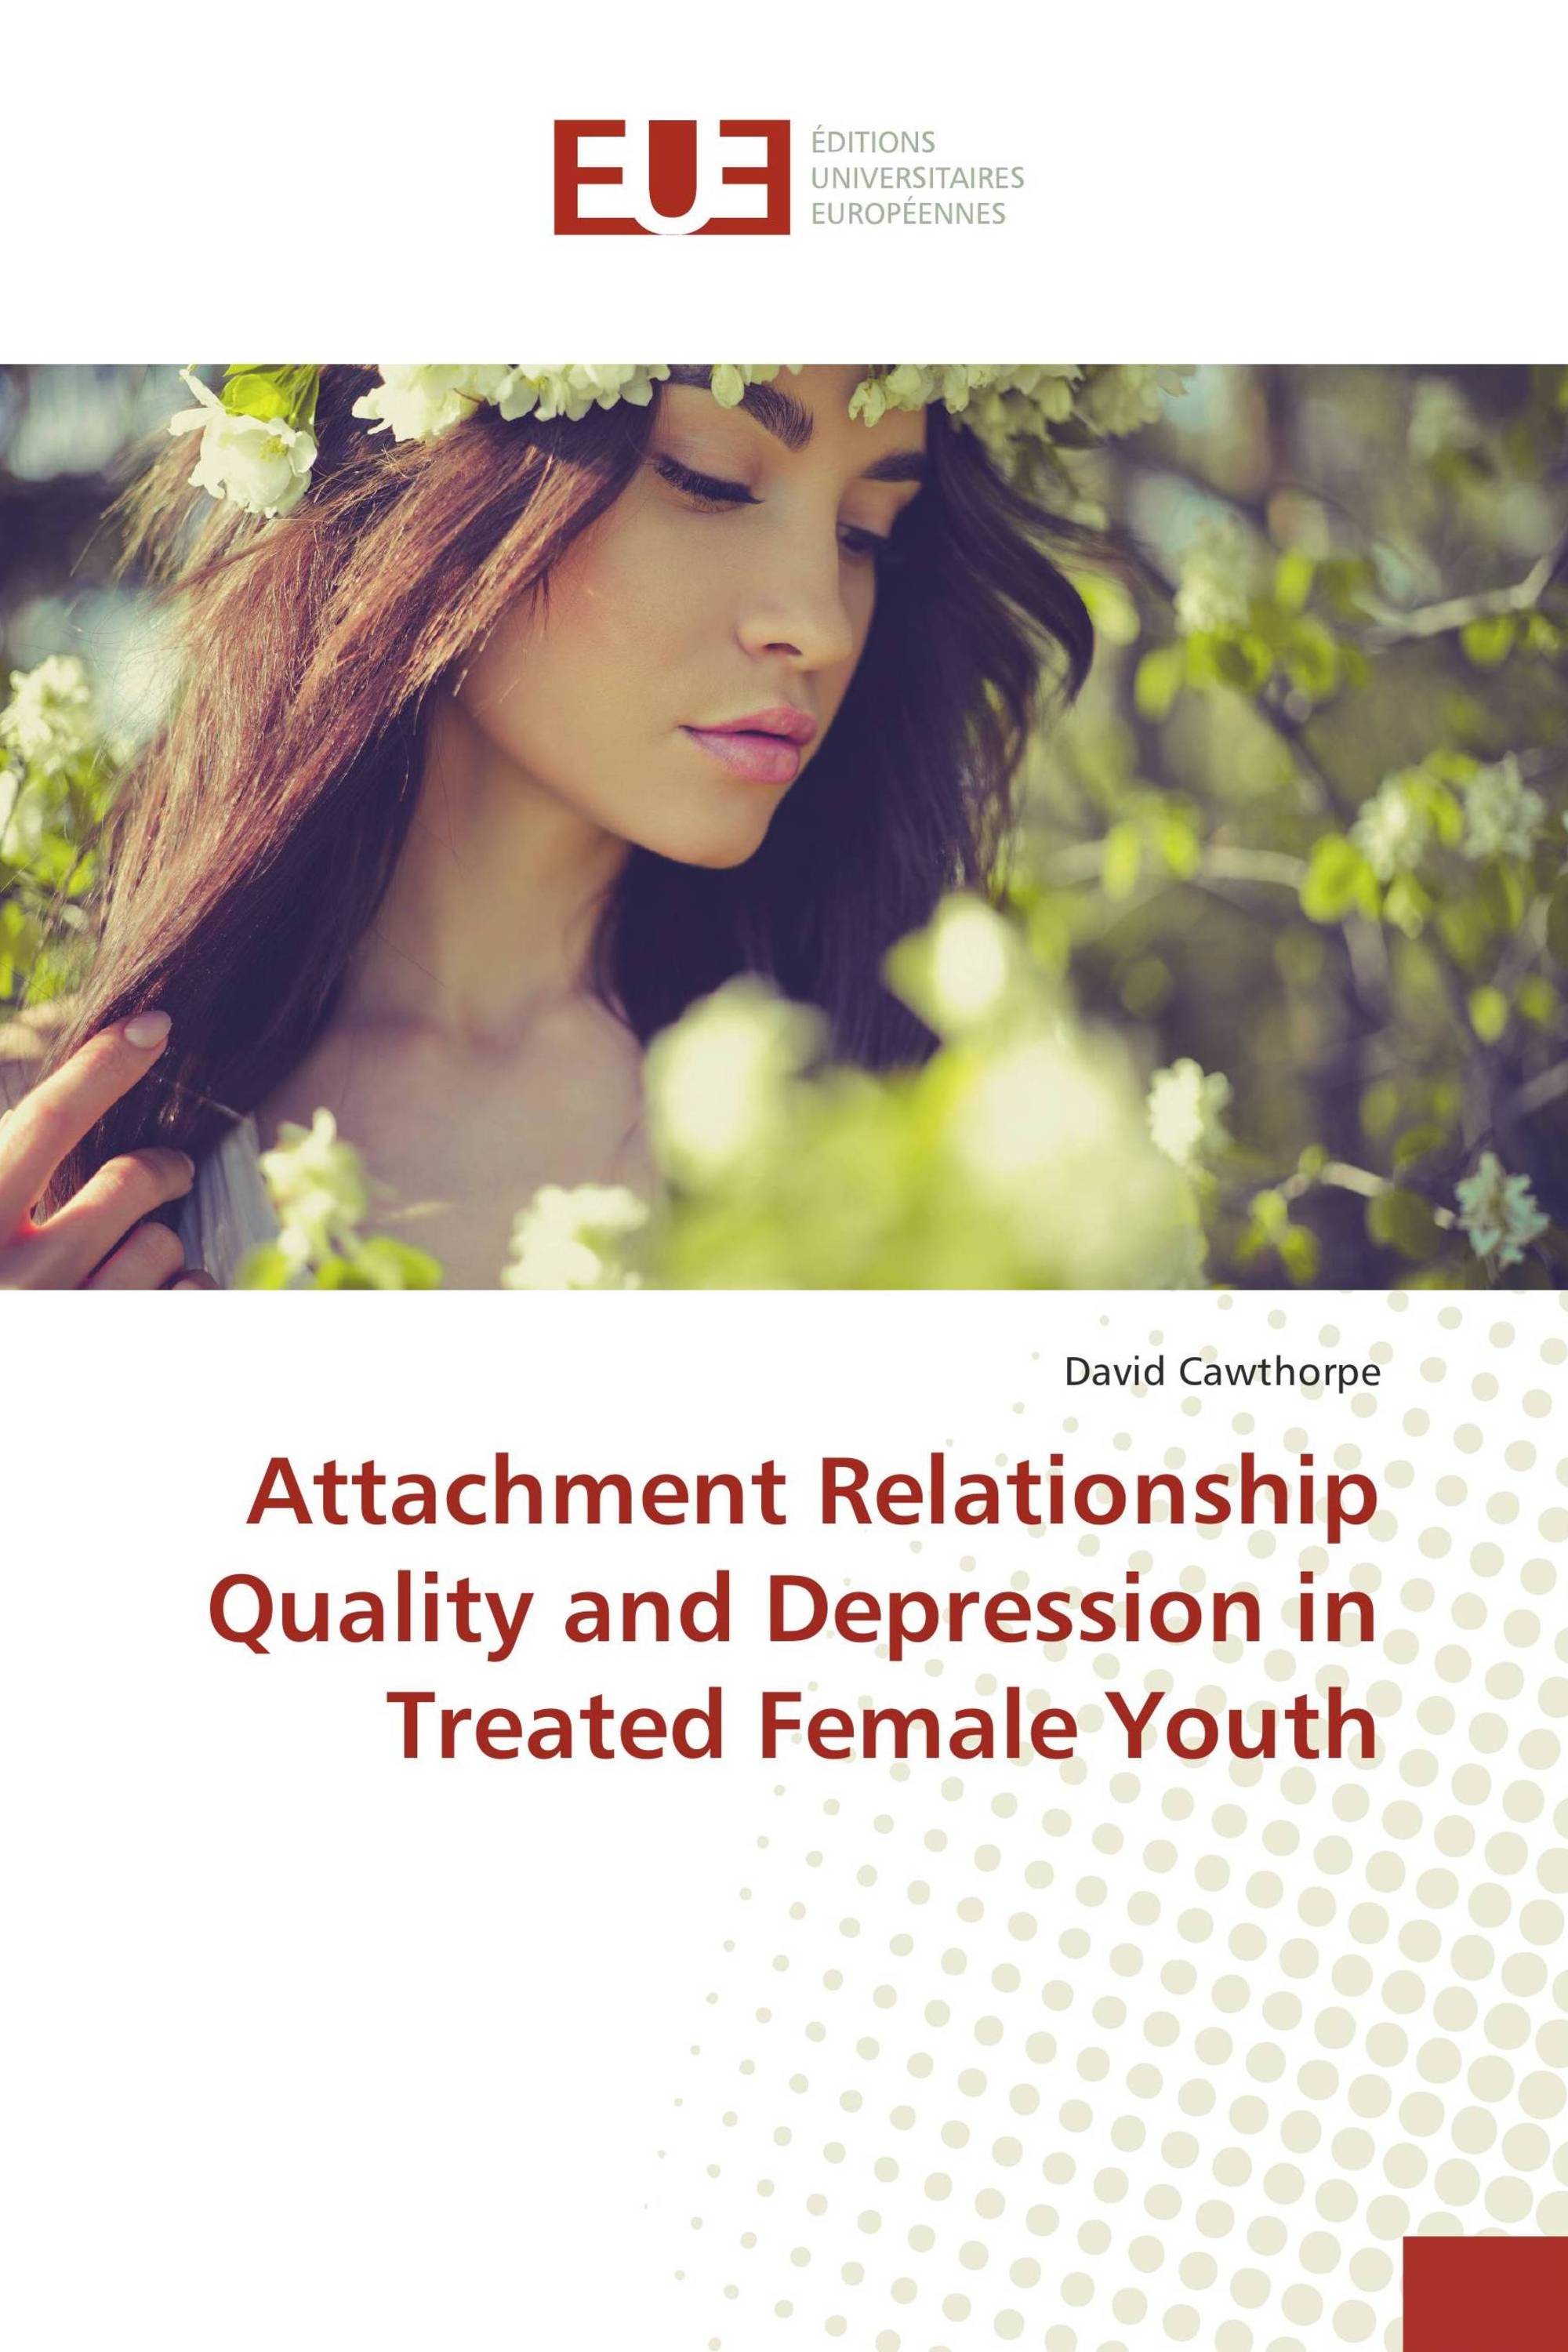 Attachment Relationship Quality and Depression in Treated Female Youth